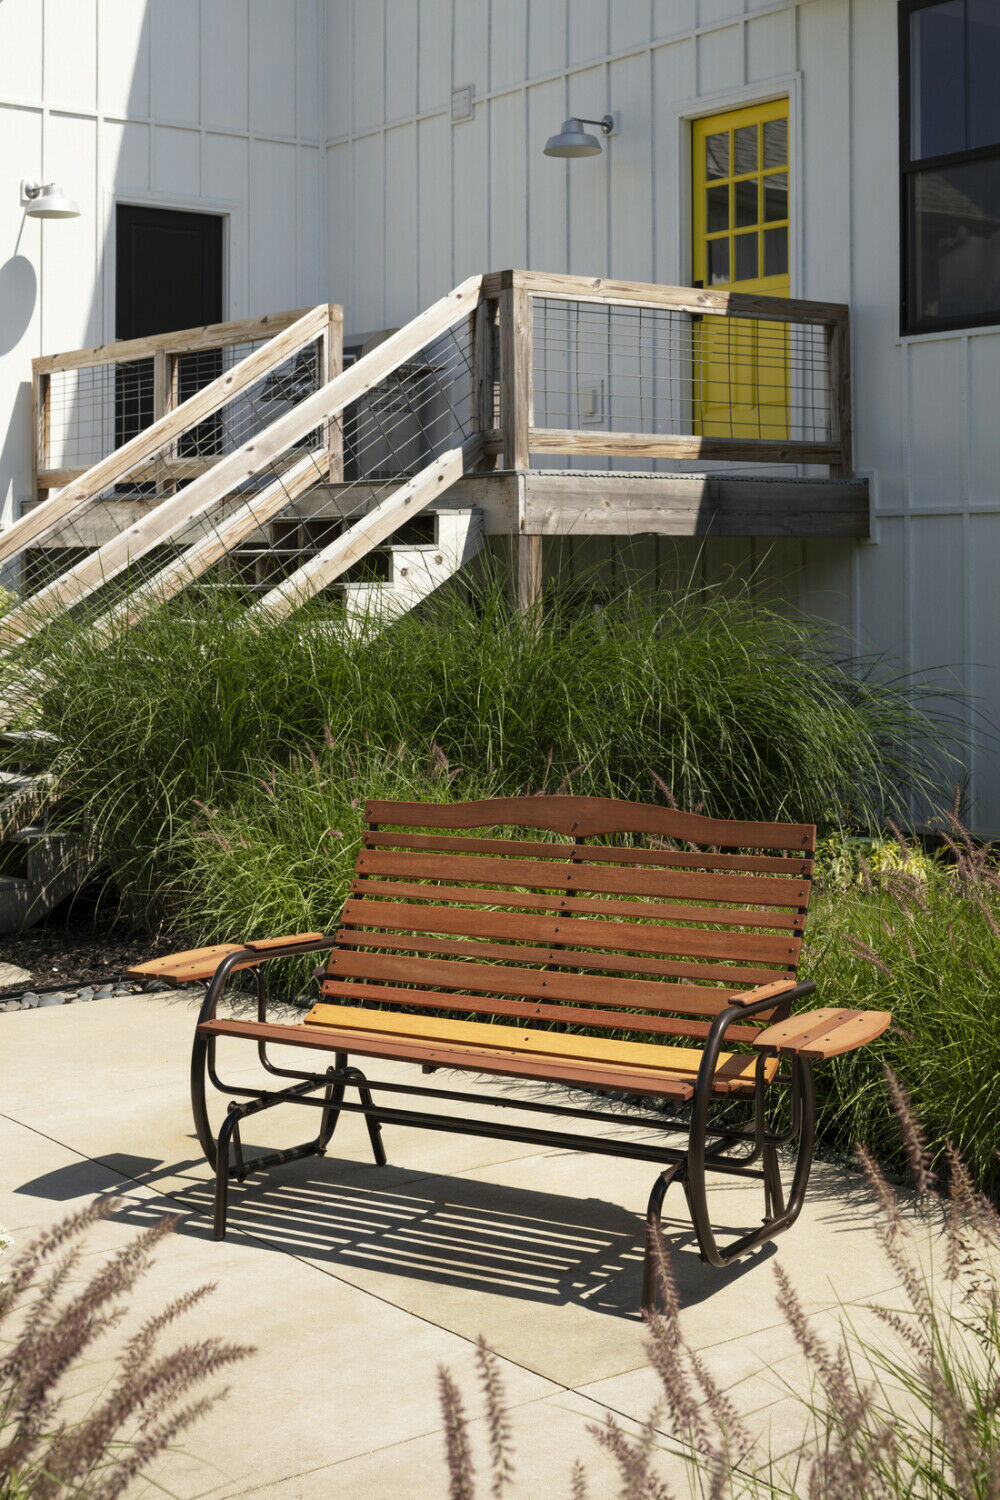 Wood Patio Bench Glider With Trays Outdoor Garden Porch Swing Chair Loveseat image 5